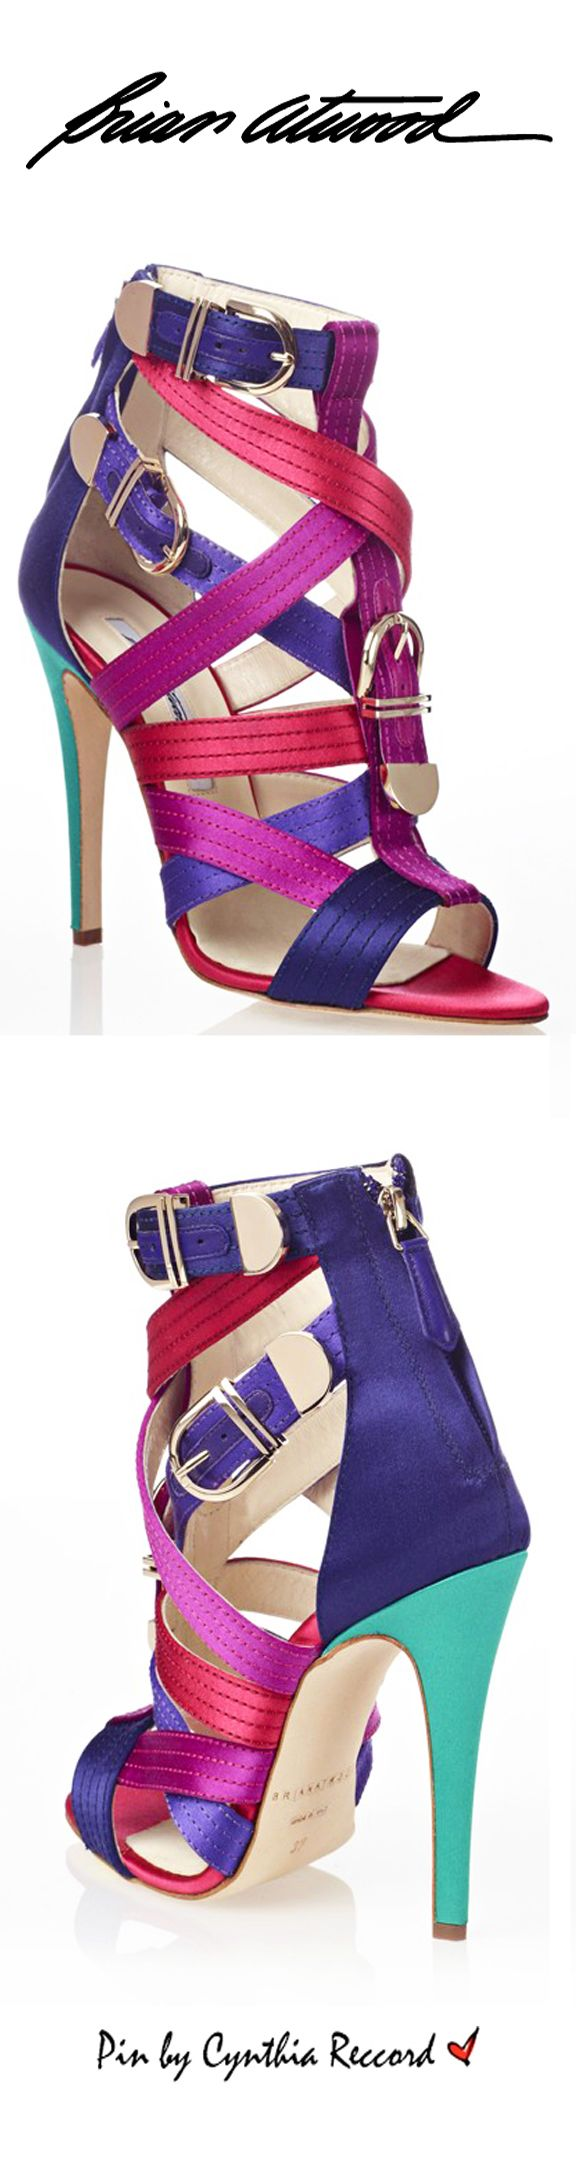 Brian Atwood | SS 2016 Collection | cynthia reccord